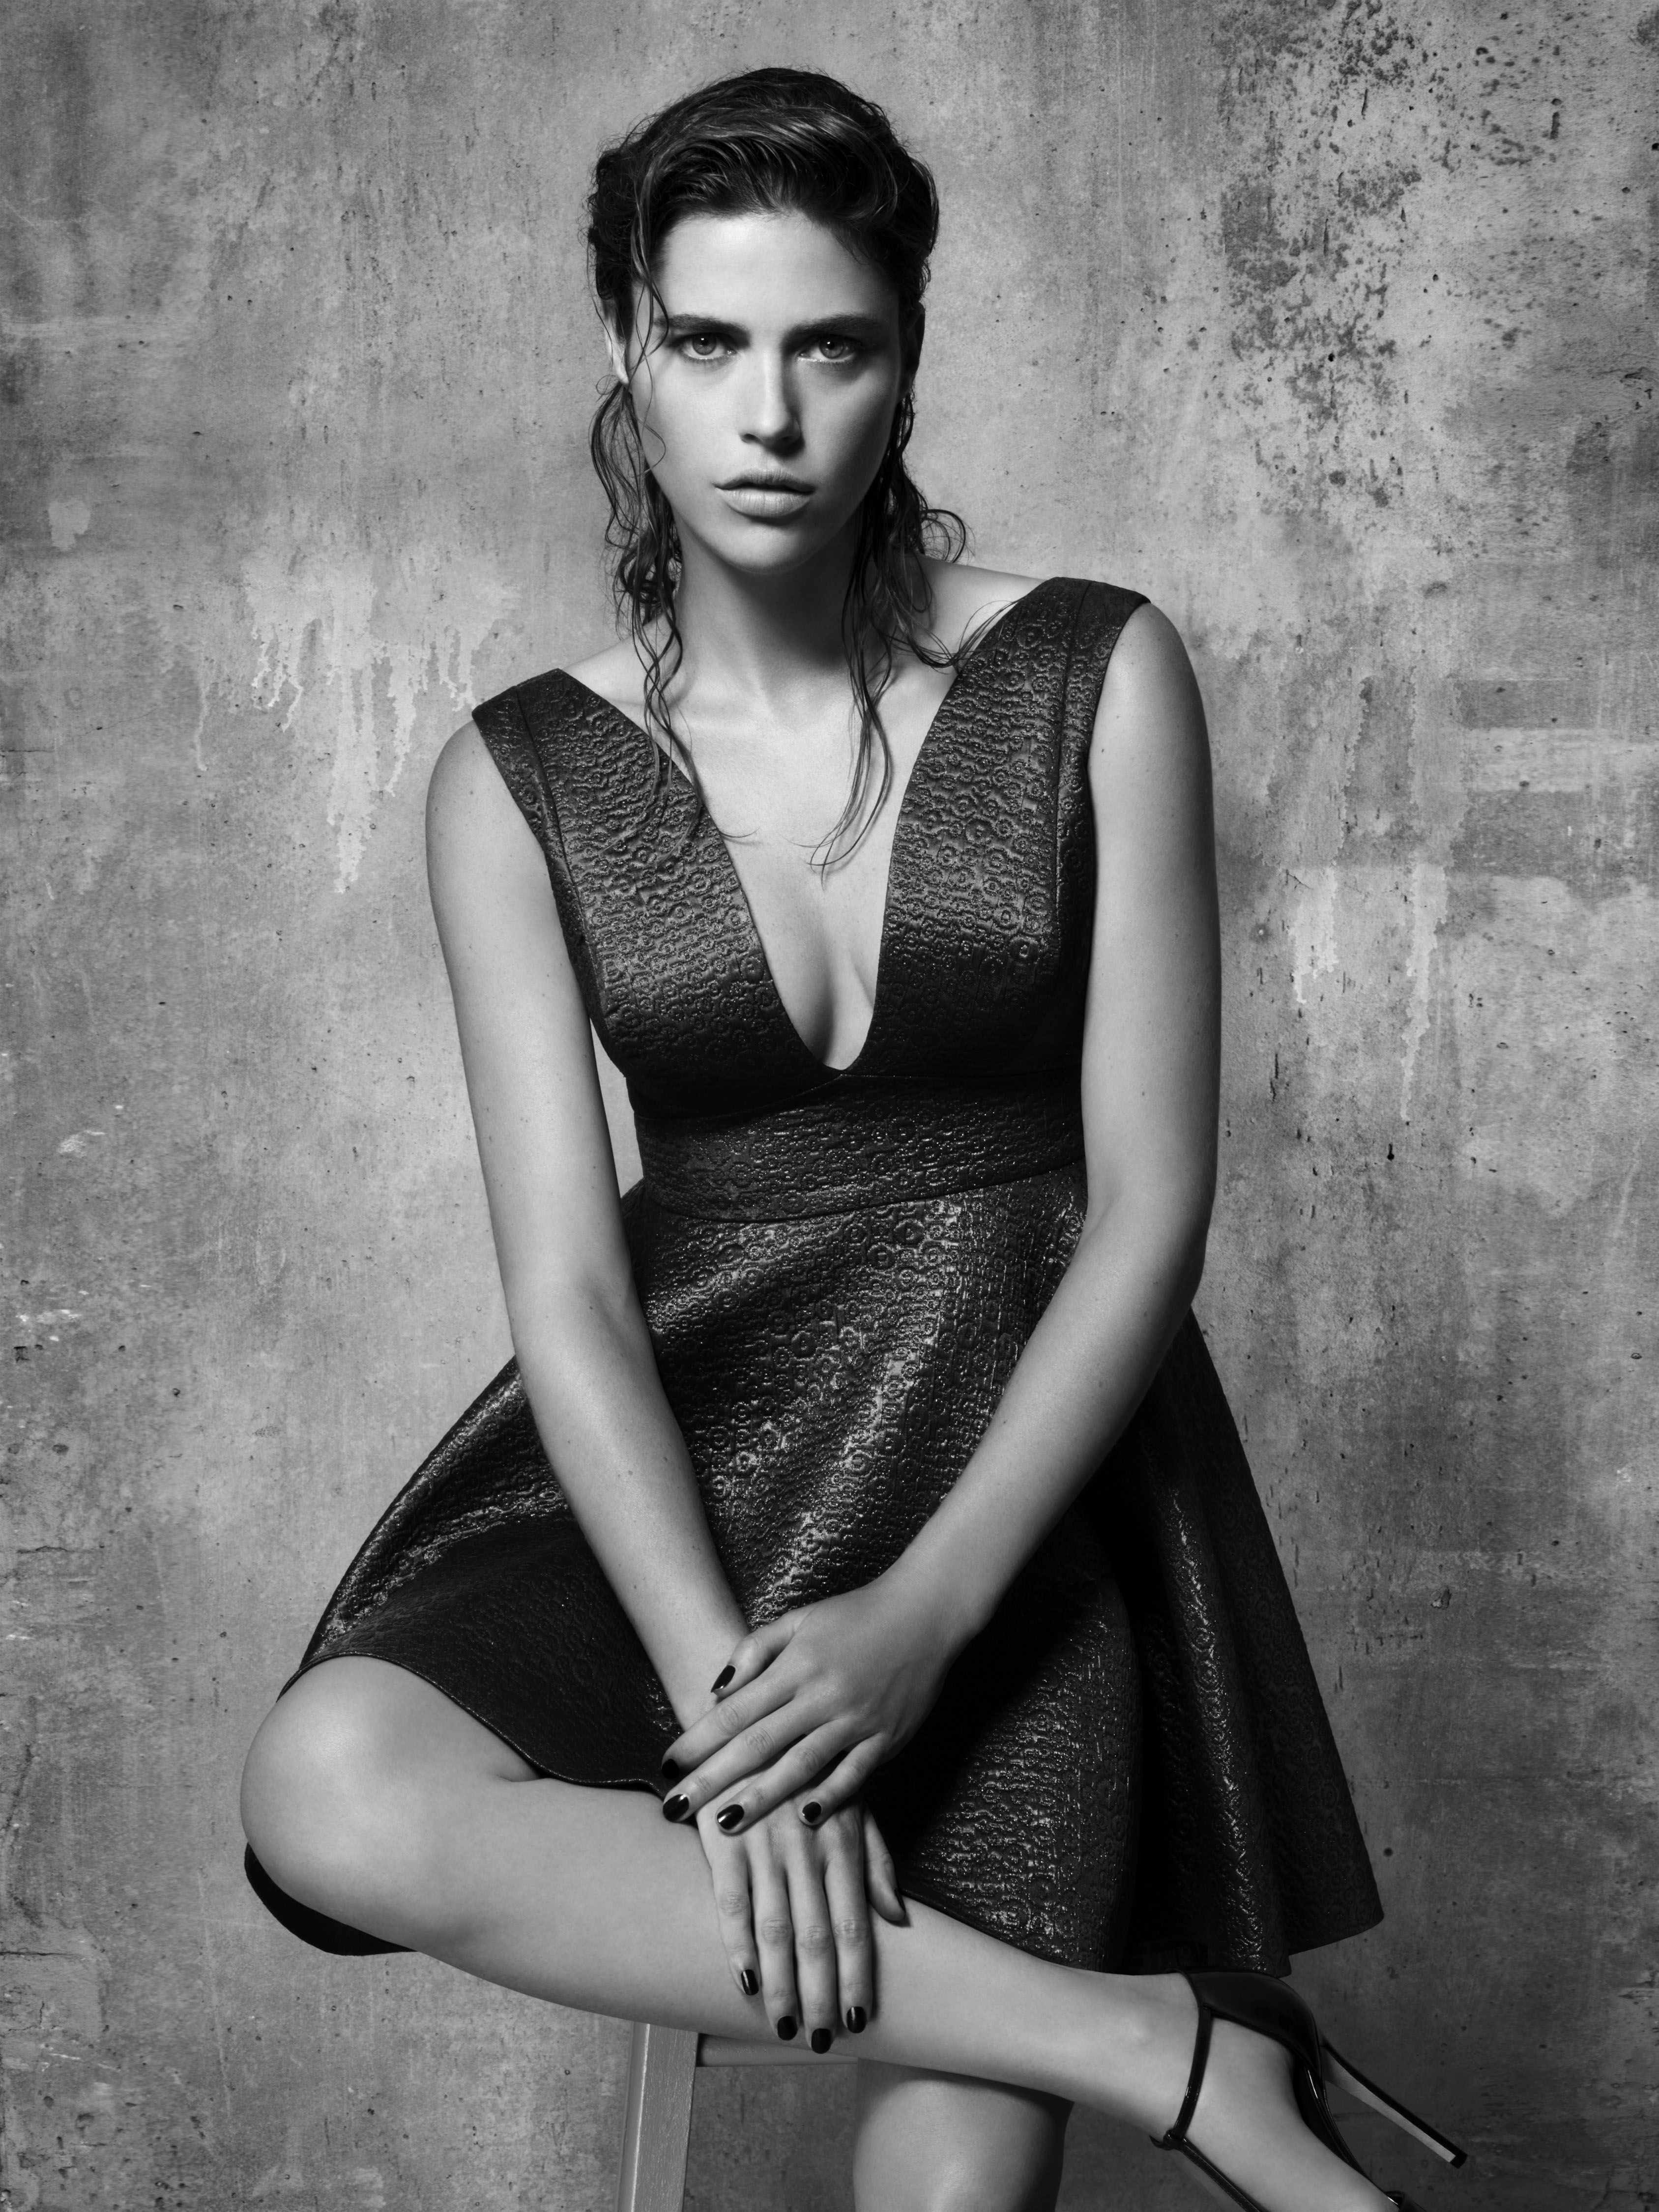 Black dress elle - This Is A Must Have Dress For The Holidays Elle By Rw Co Geo Textured